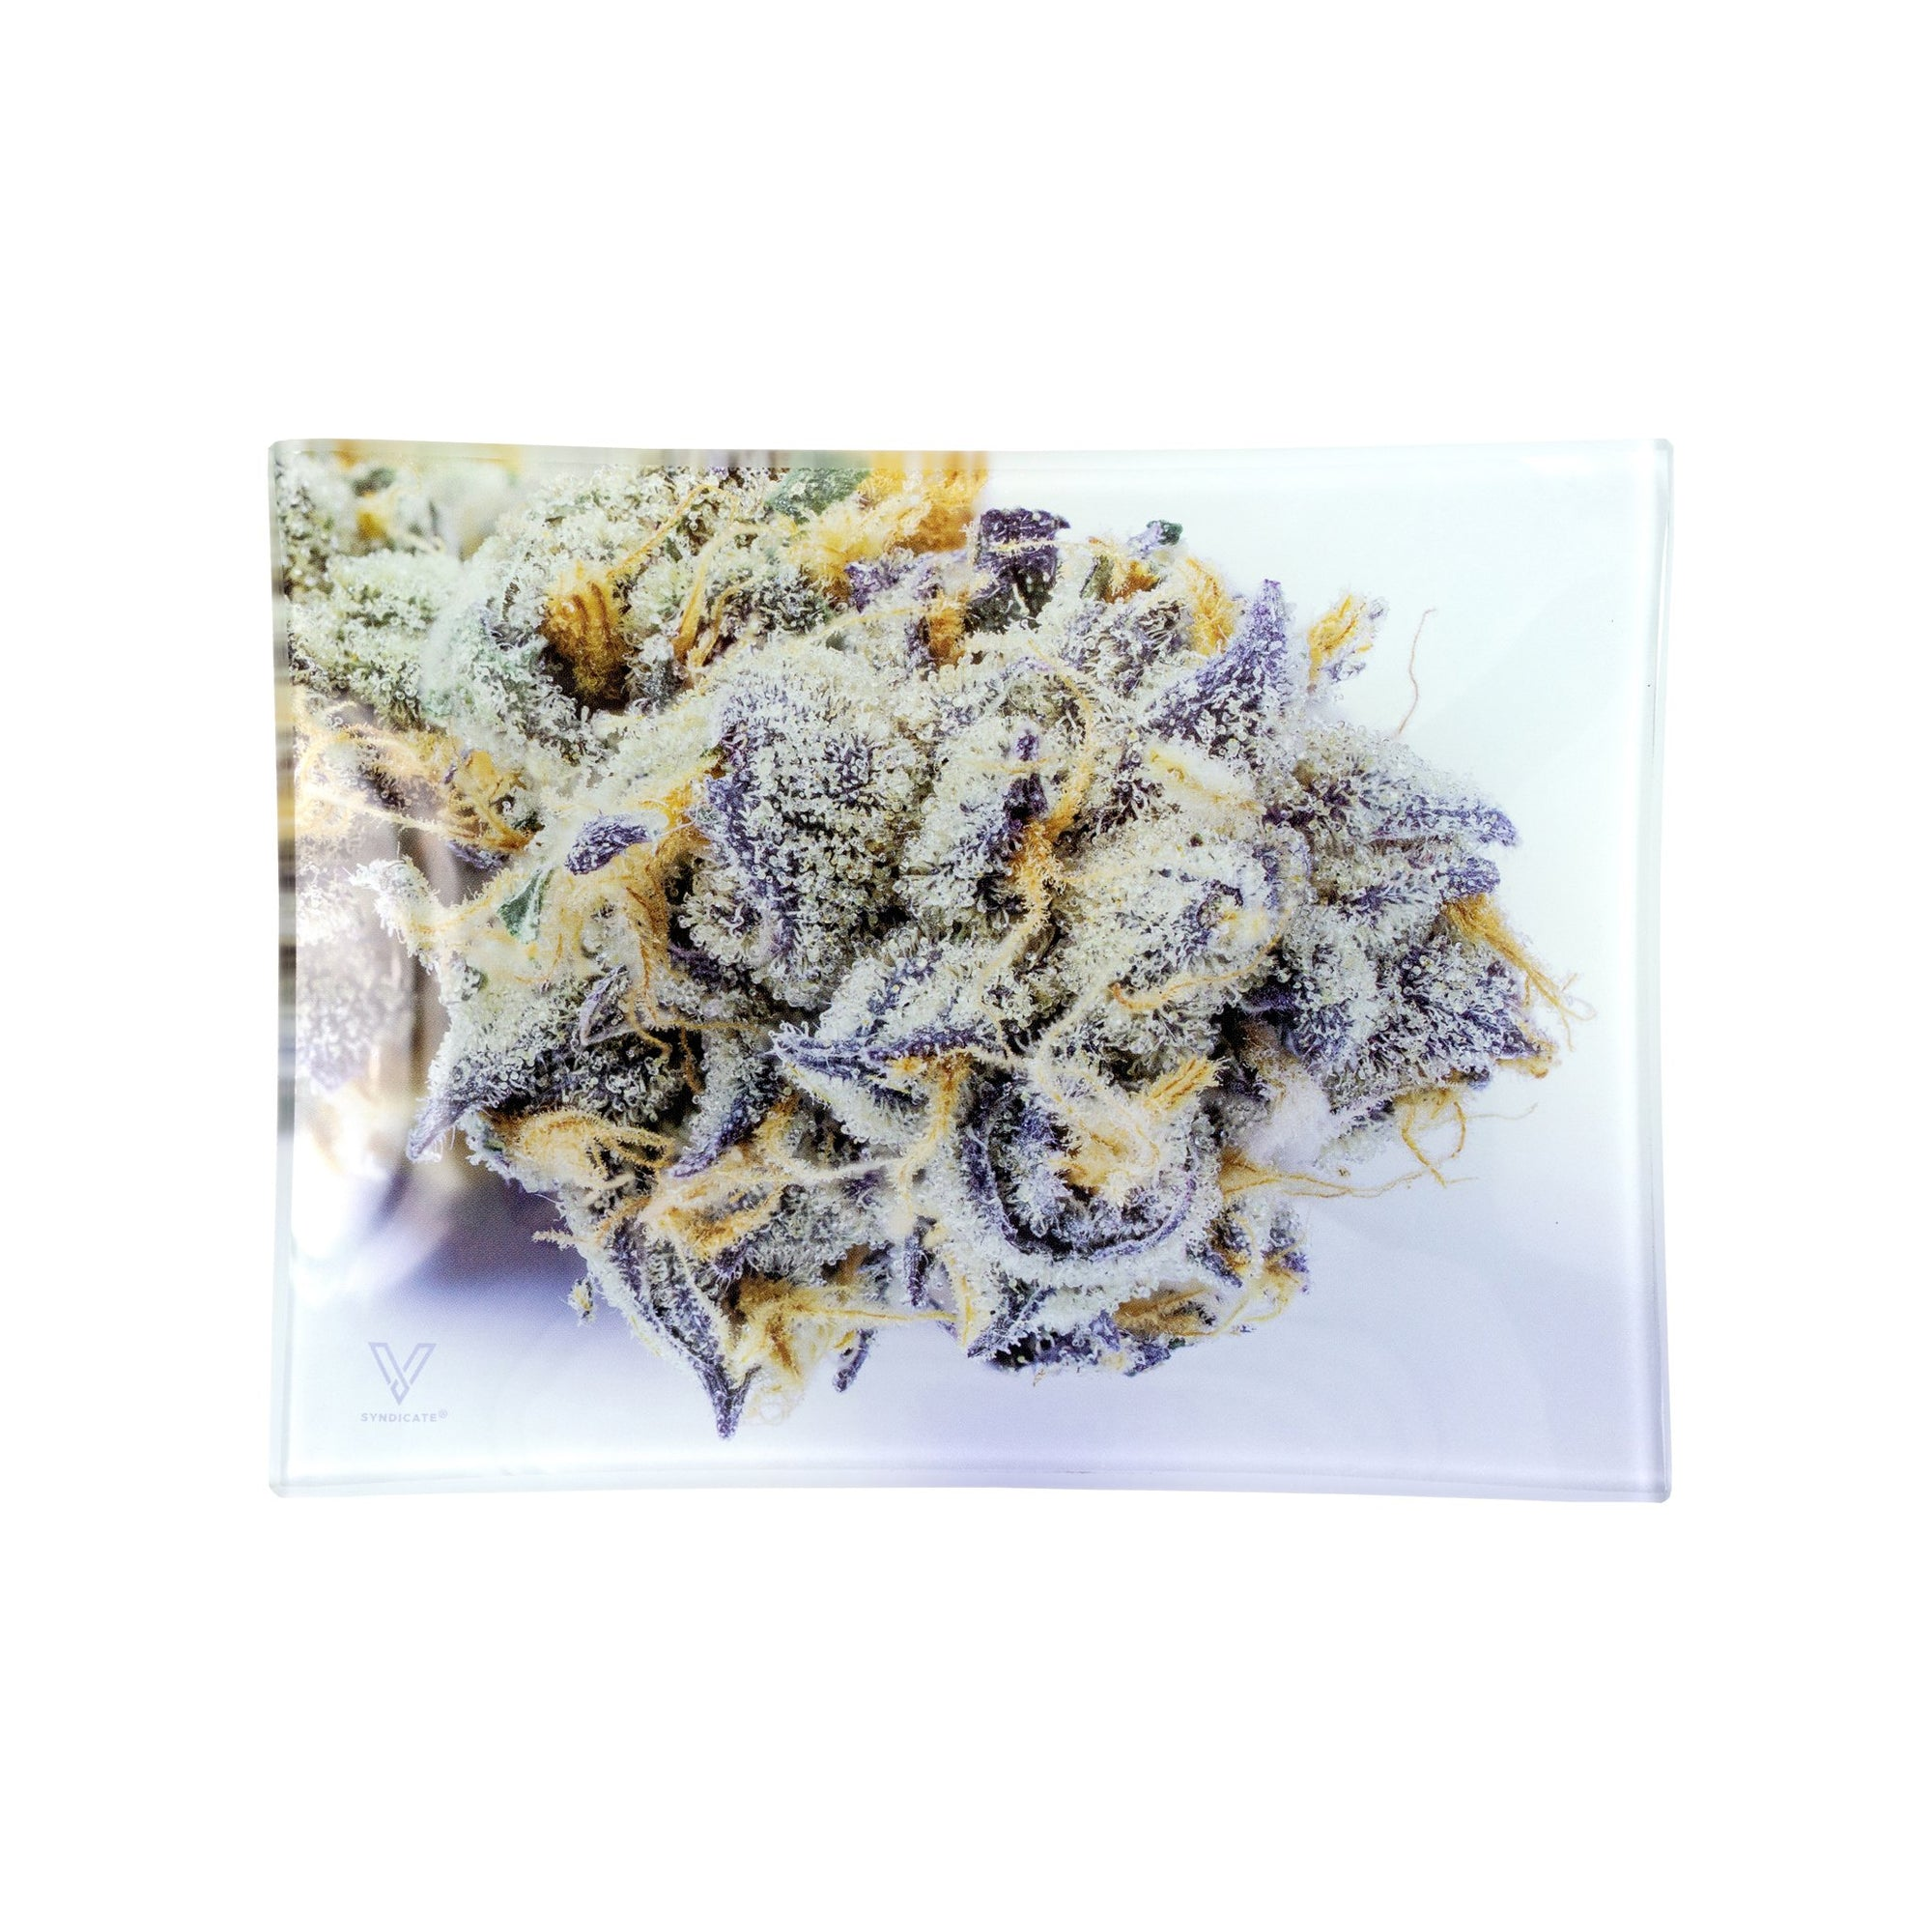 6.5 inch V Syndicate Girl Scout Cookies Glass Rolling Tray smoking accessory closeup microscopic shot of Bubba Kush marijuana